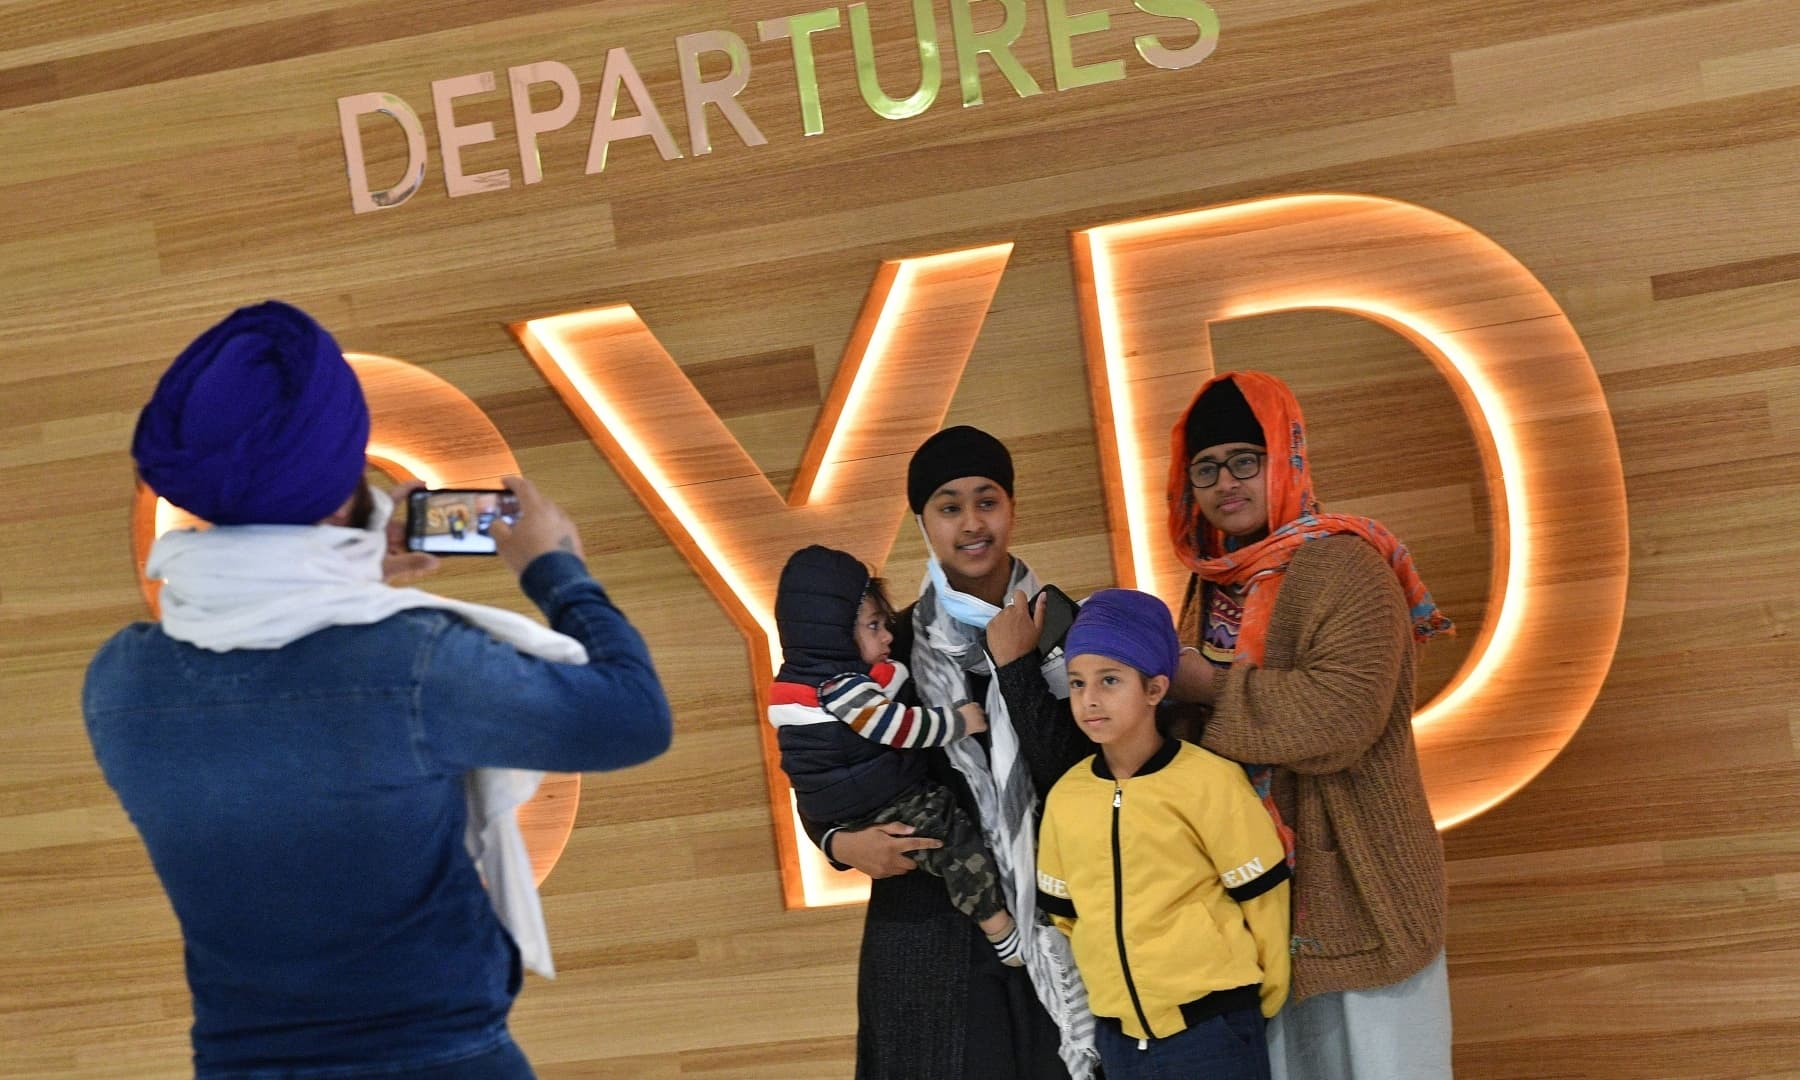 A family takes photos before their flight for New Zealand at Sydney International Airport on April 19. — AFP